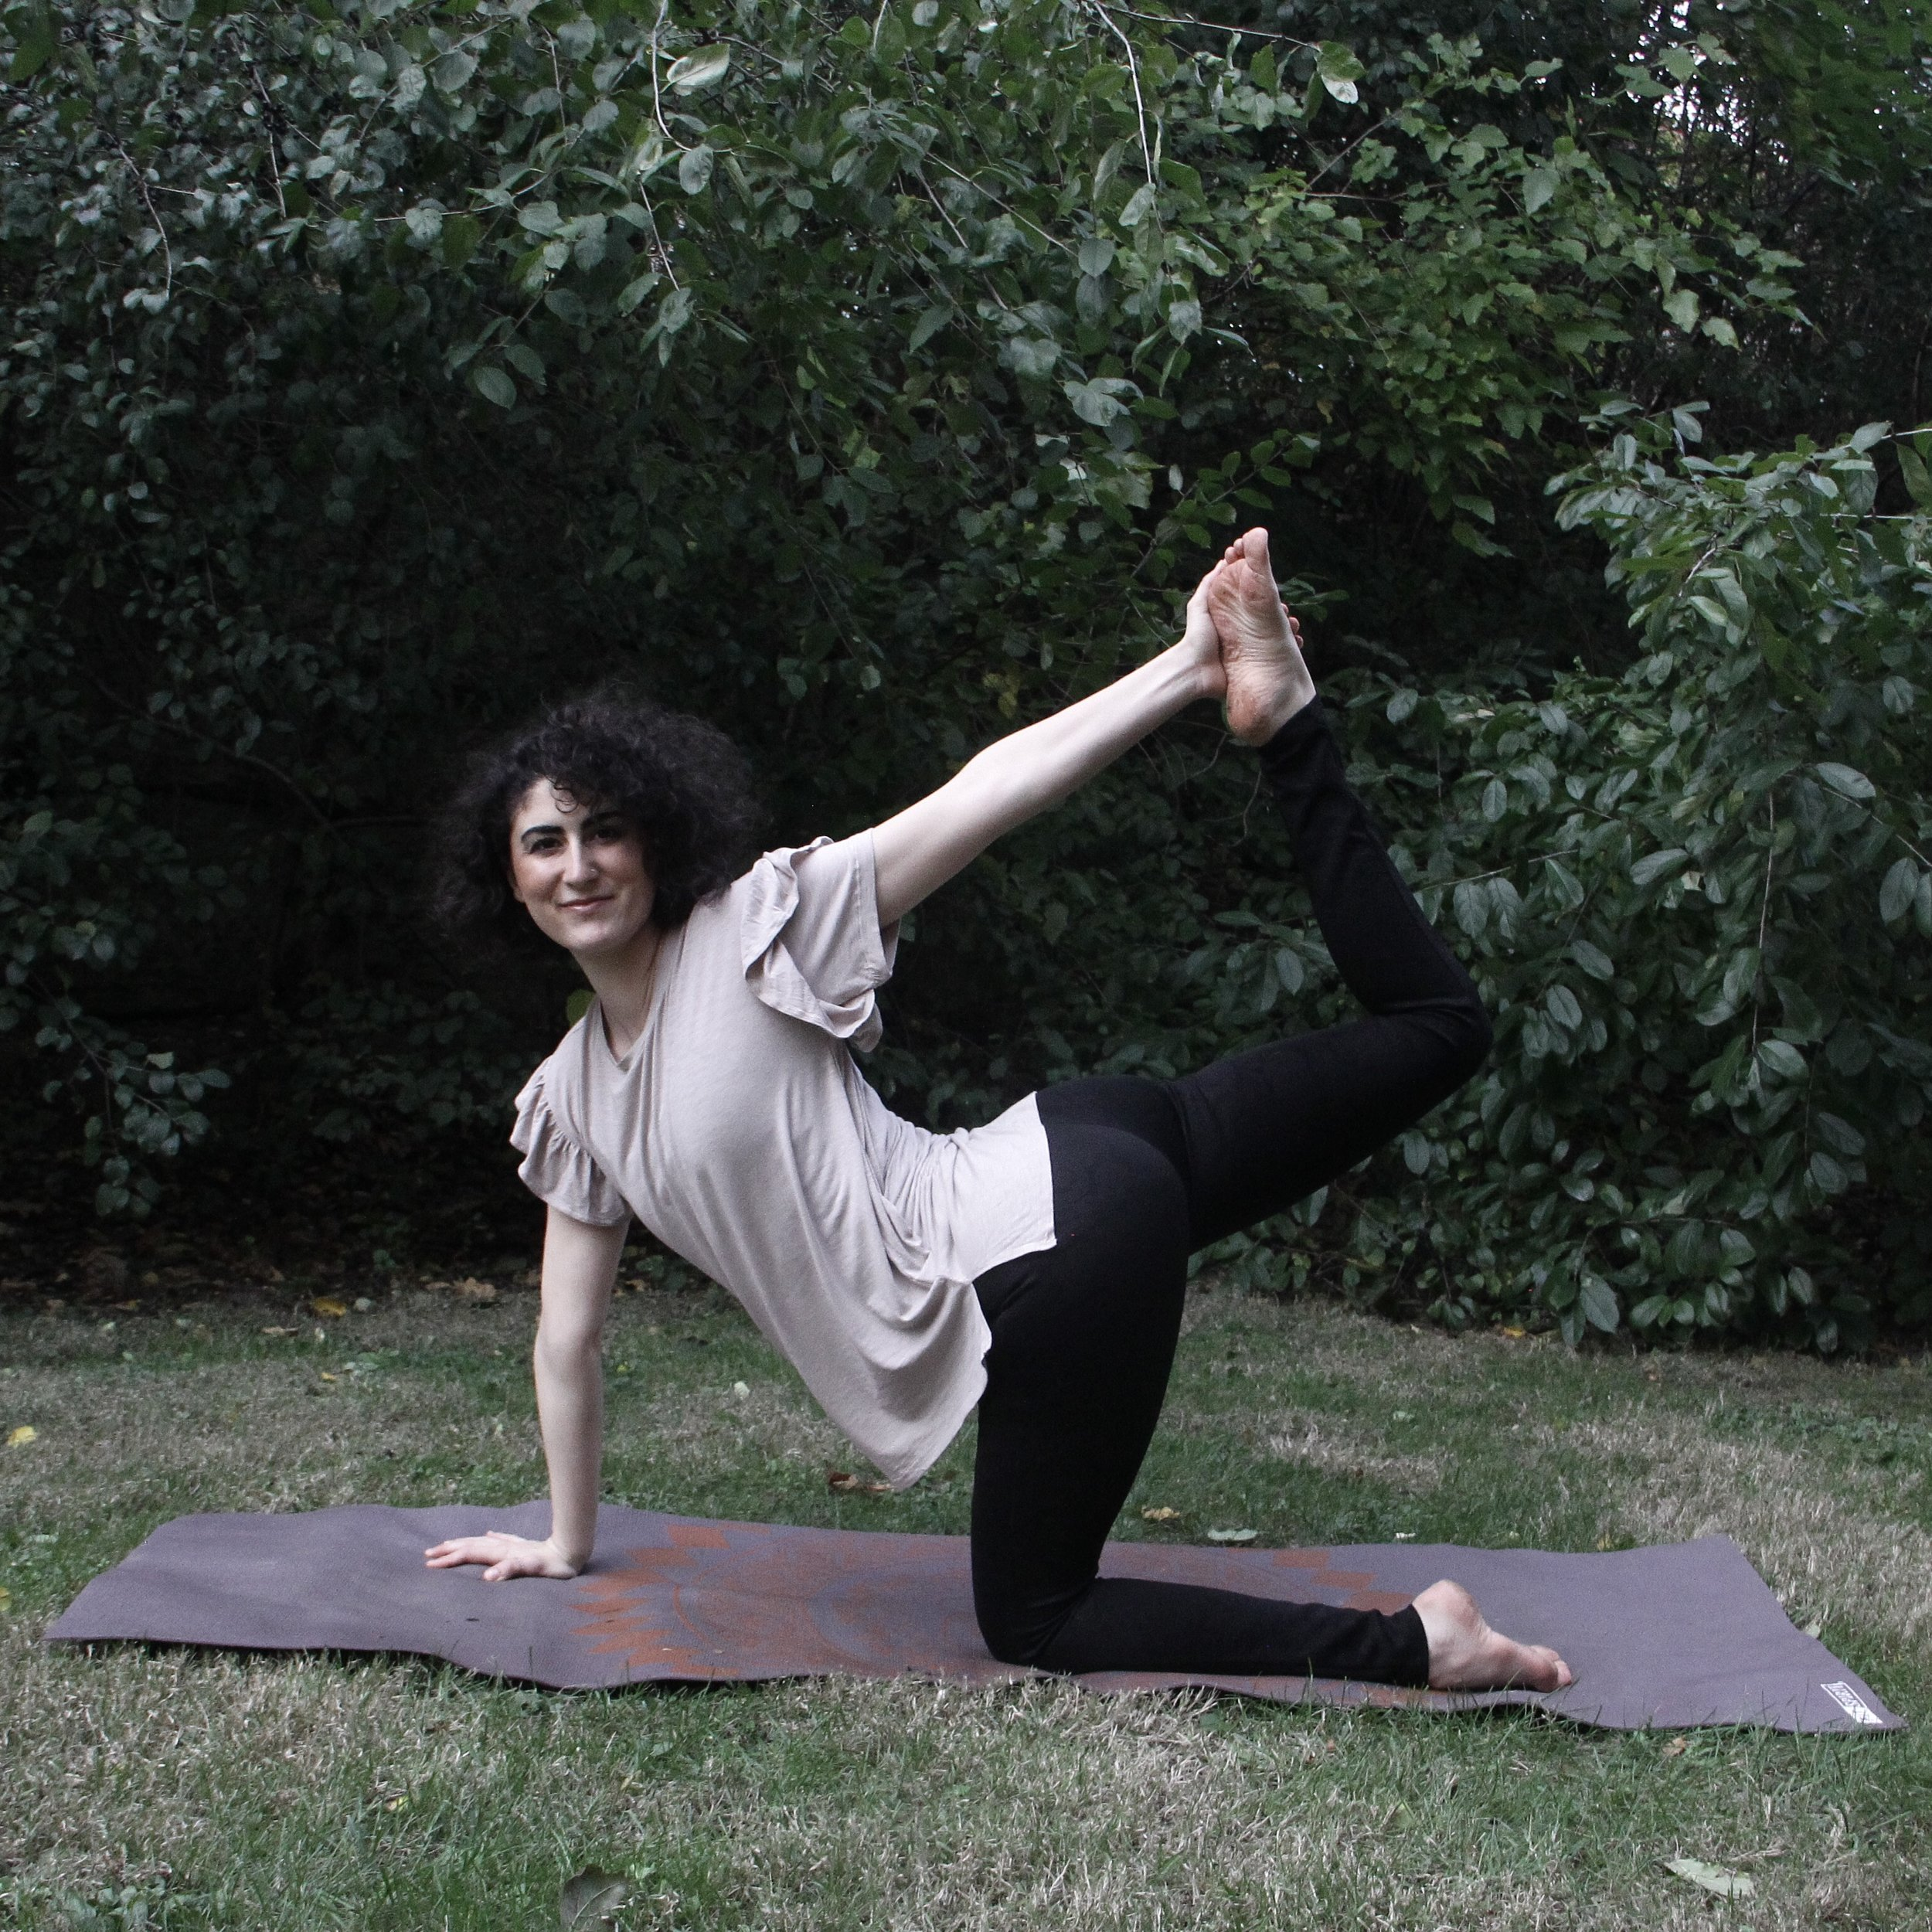 MEET THE INSTRUCTOR... - Hi! I'm Rachel Marie White. I am a yoga teacher and chronic illness warrior. For nearly a decade, I have been living with chronic pain and chronic illness symptoms. Through all of the unpredictable ups and downs, I have learned how to care for my mind, body and spirit with yoga. Sharing this healing practice with others has become my life's passion. I've already helped thousands of chronic warriors to discover yoga practices that really work, and I would love to help you do the same!